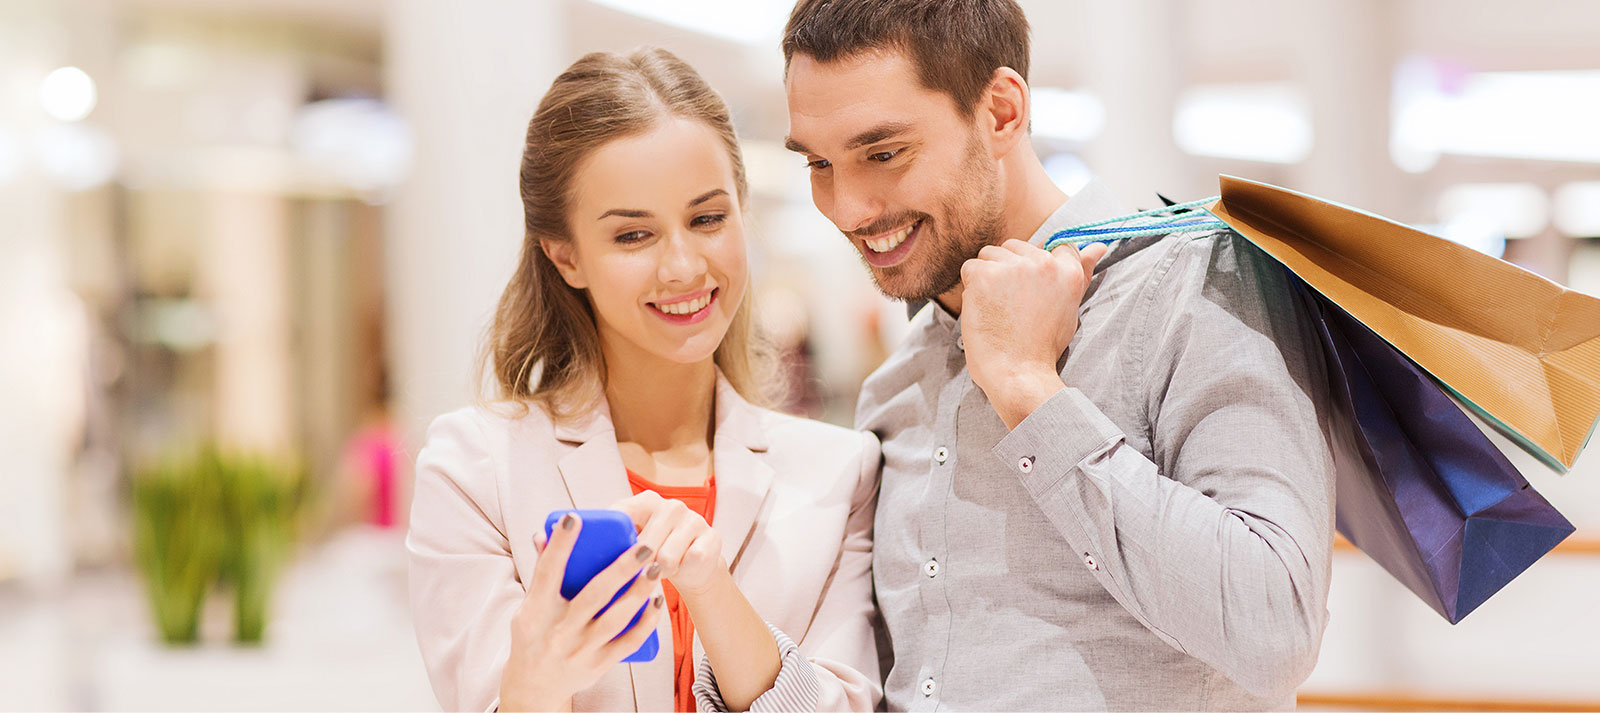 Personalizing The Retail Customer Experience